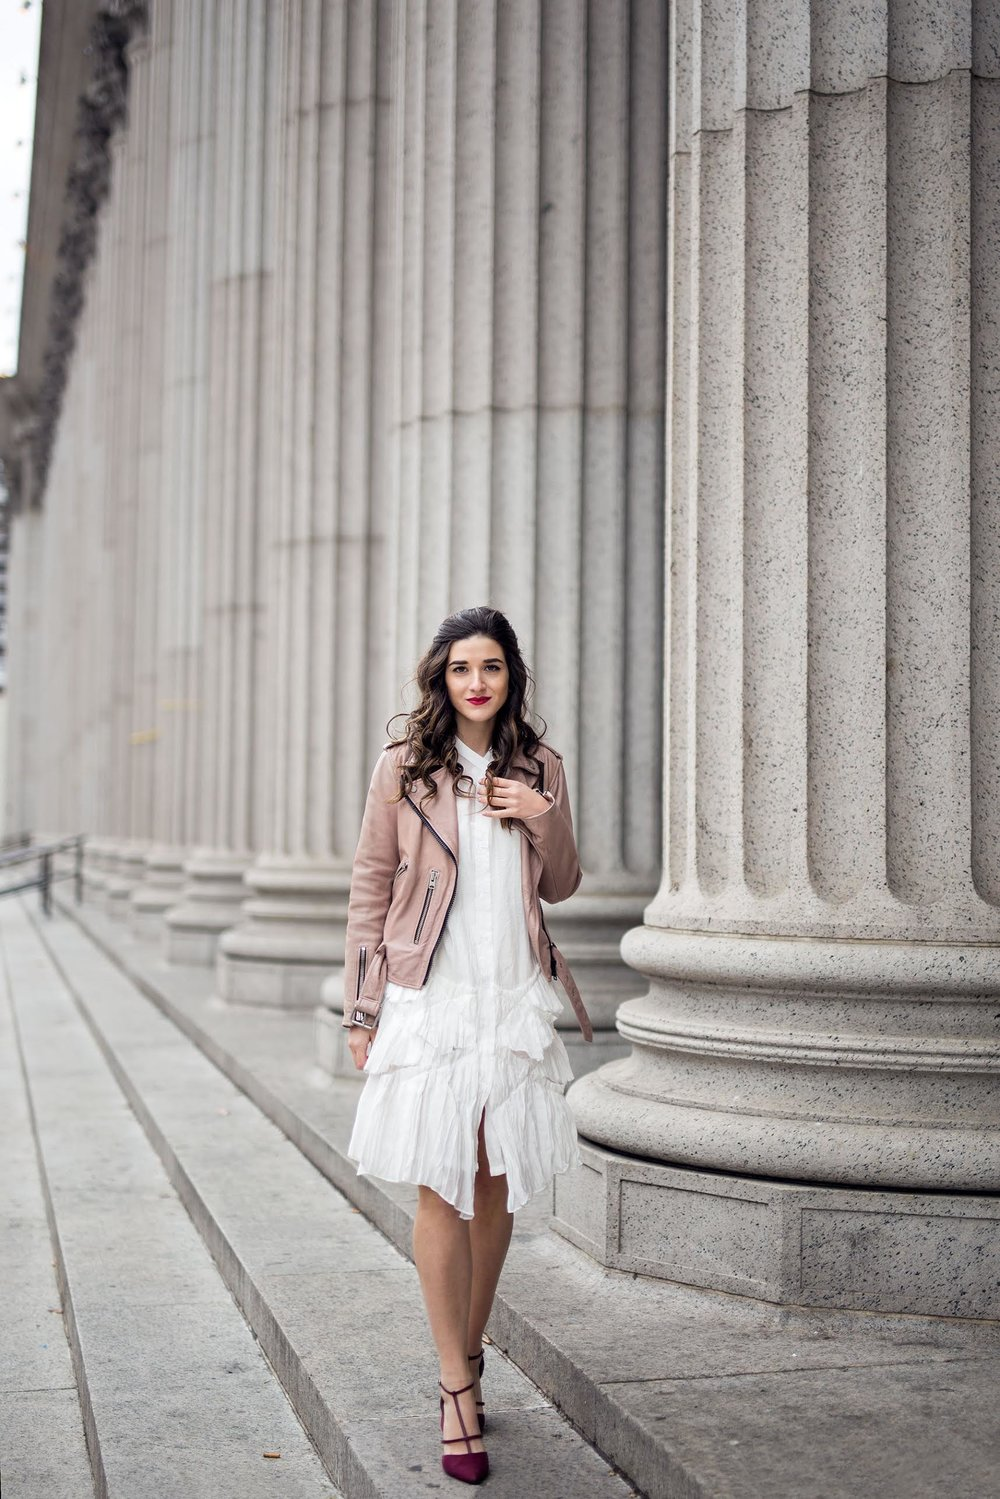 White Ruffle Dress Luvit Louboutins & Love Fashion Blog Esther Santer NYC Street Style Blogger Outfit OOTD Trendy Girly Feminine All Saints Blush Pink Leather Jacket Burgundy Heels Fall Look Inspo Online Shopping Wear Girl App Hair Beauty Women Shop.jpg